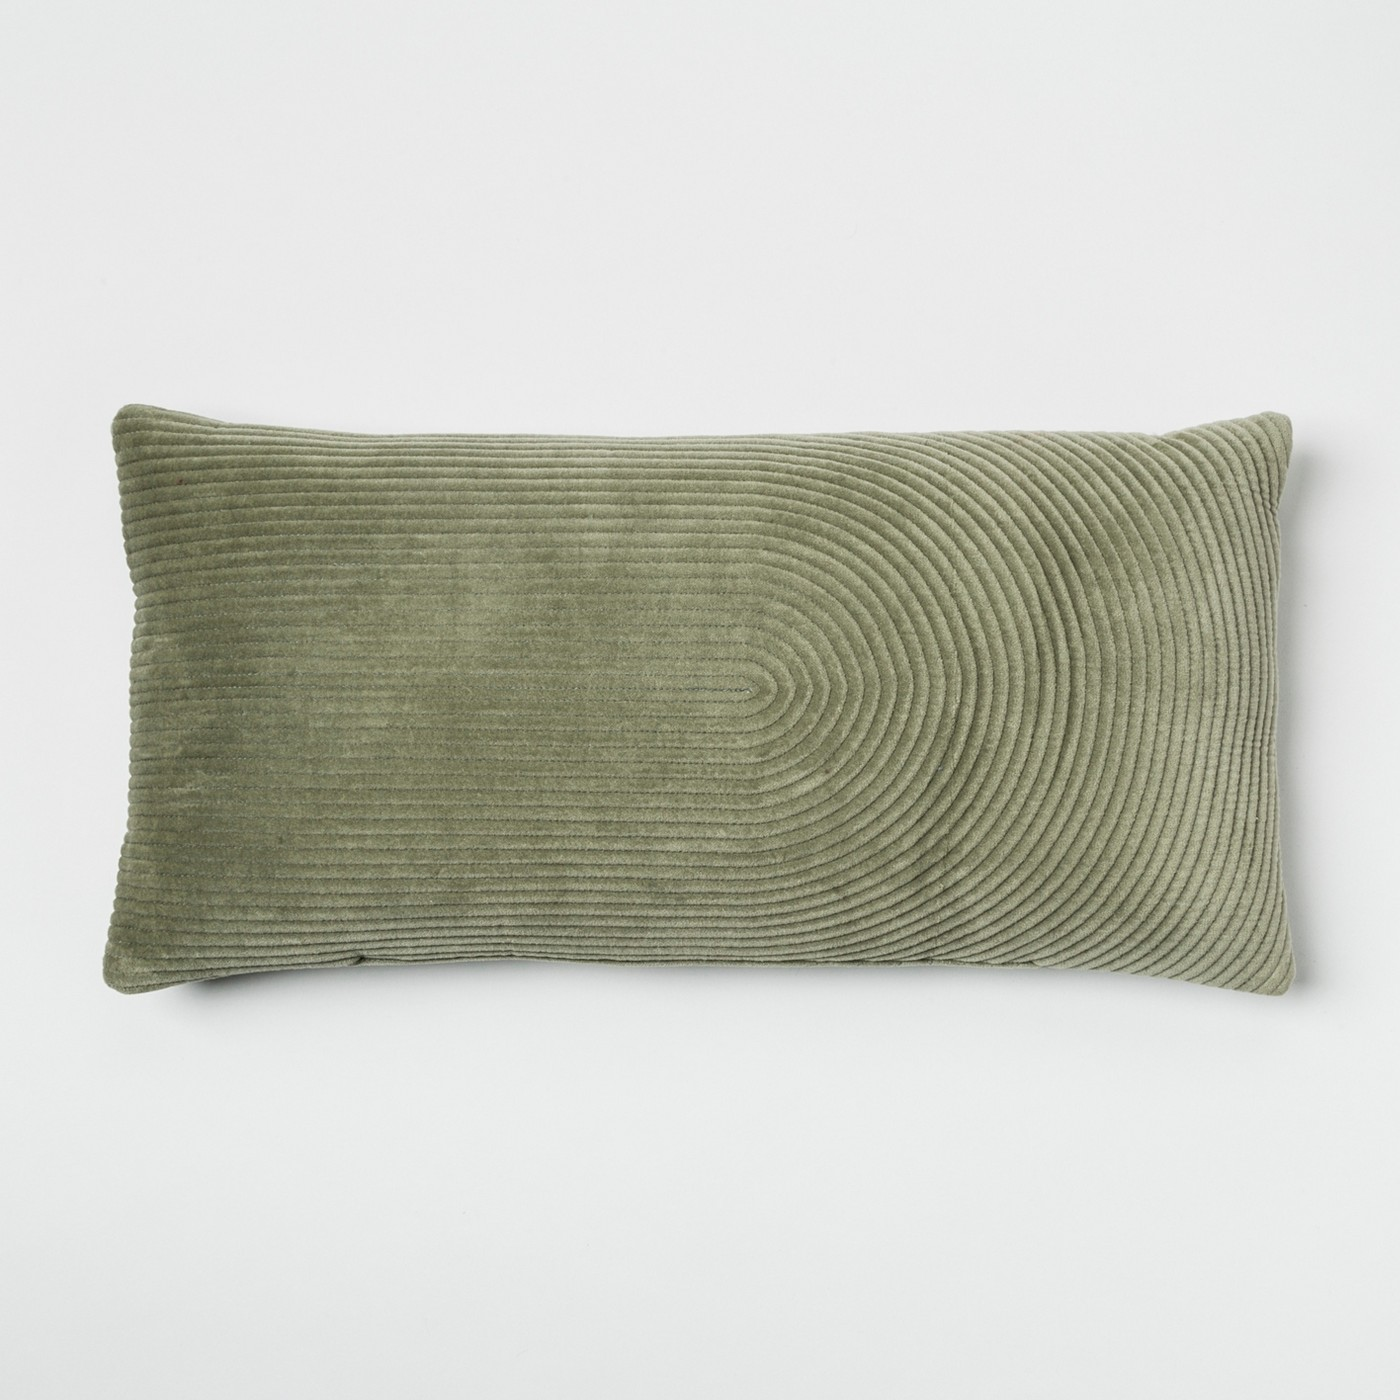 Quilted Velvet Oversize Lumbar Throw Pillow - Project 62™ - image 1 of 3